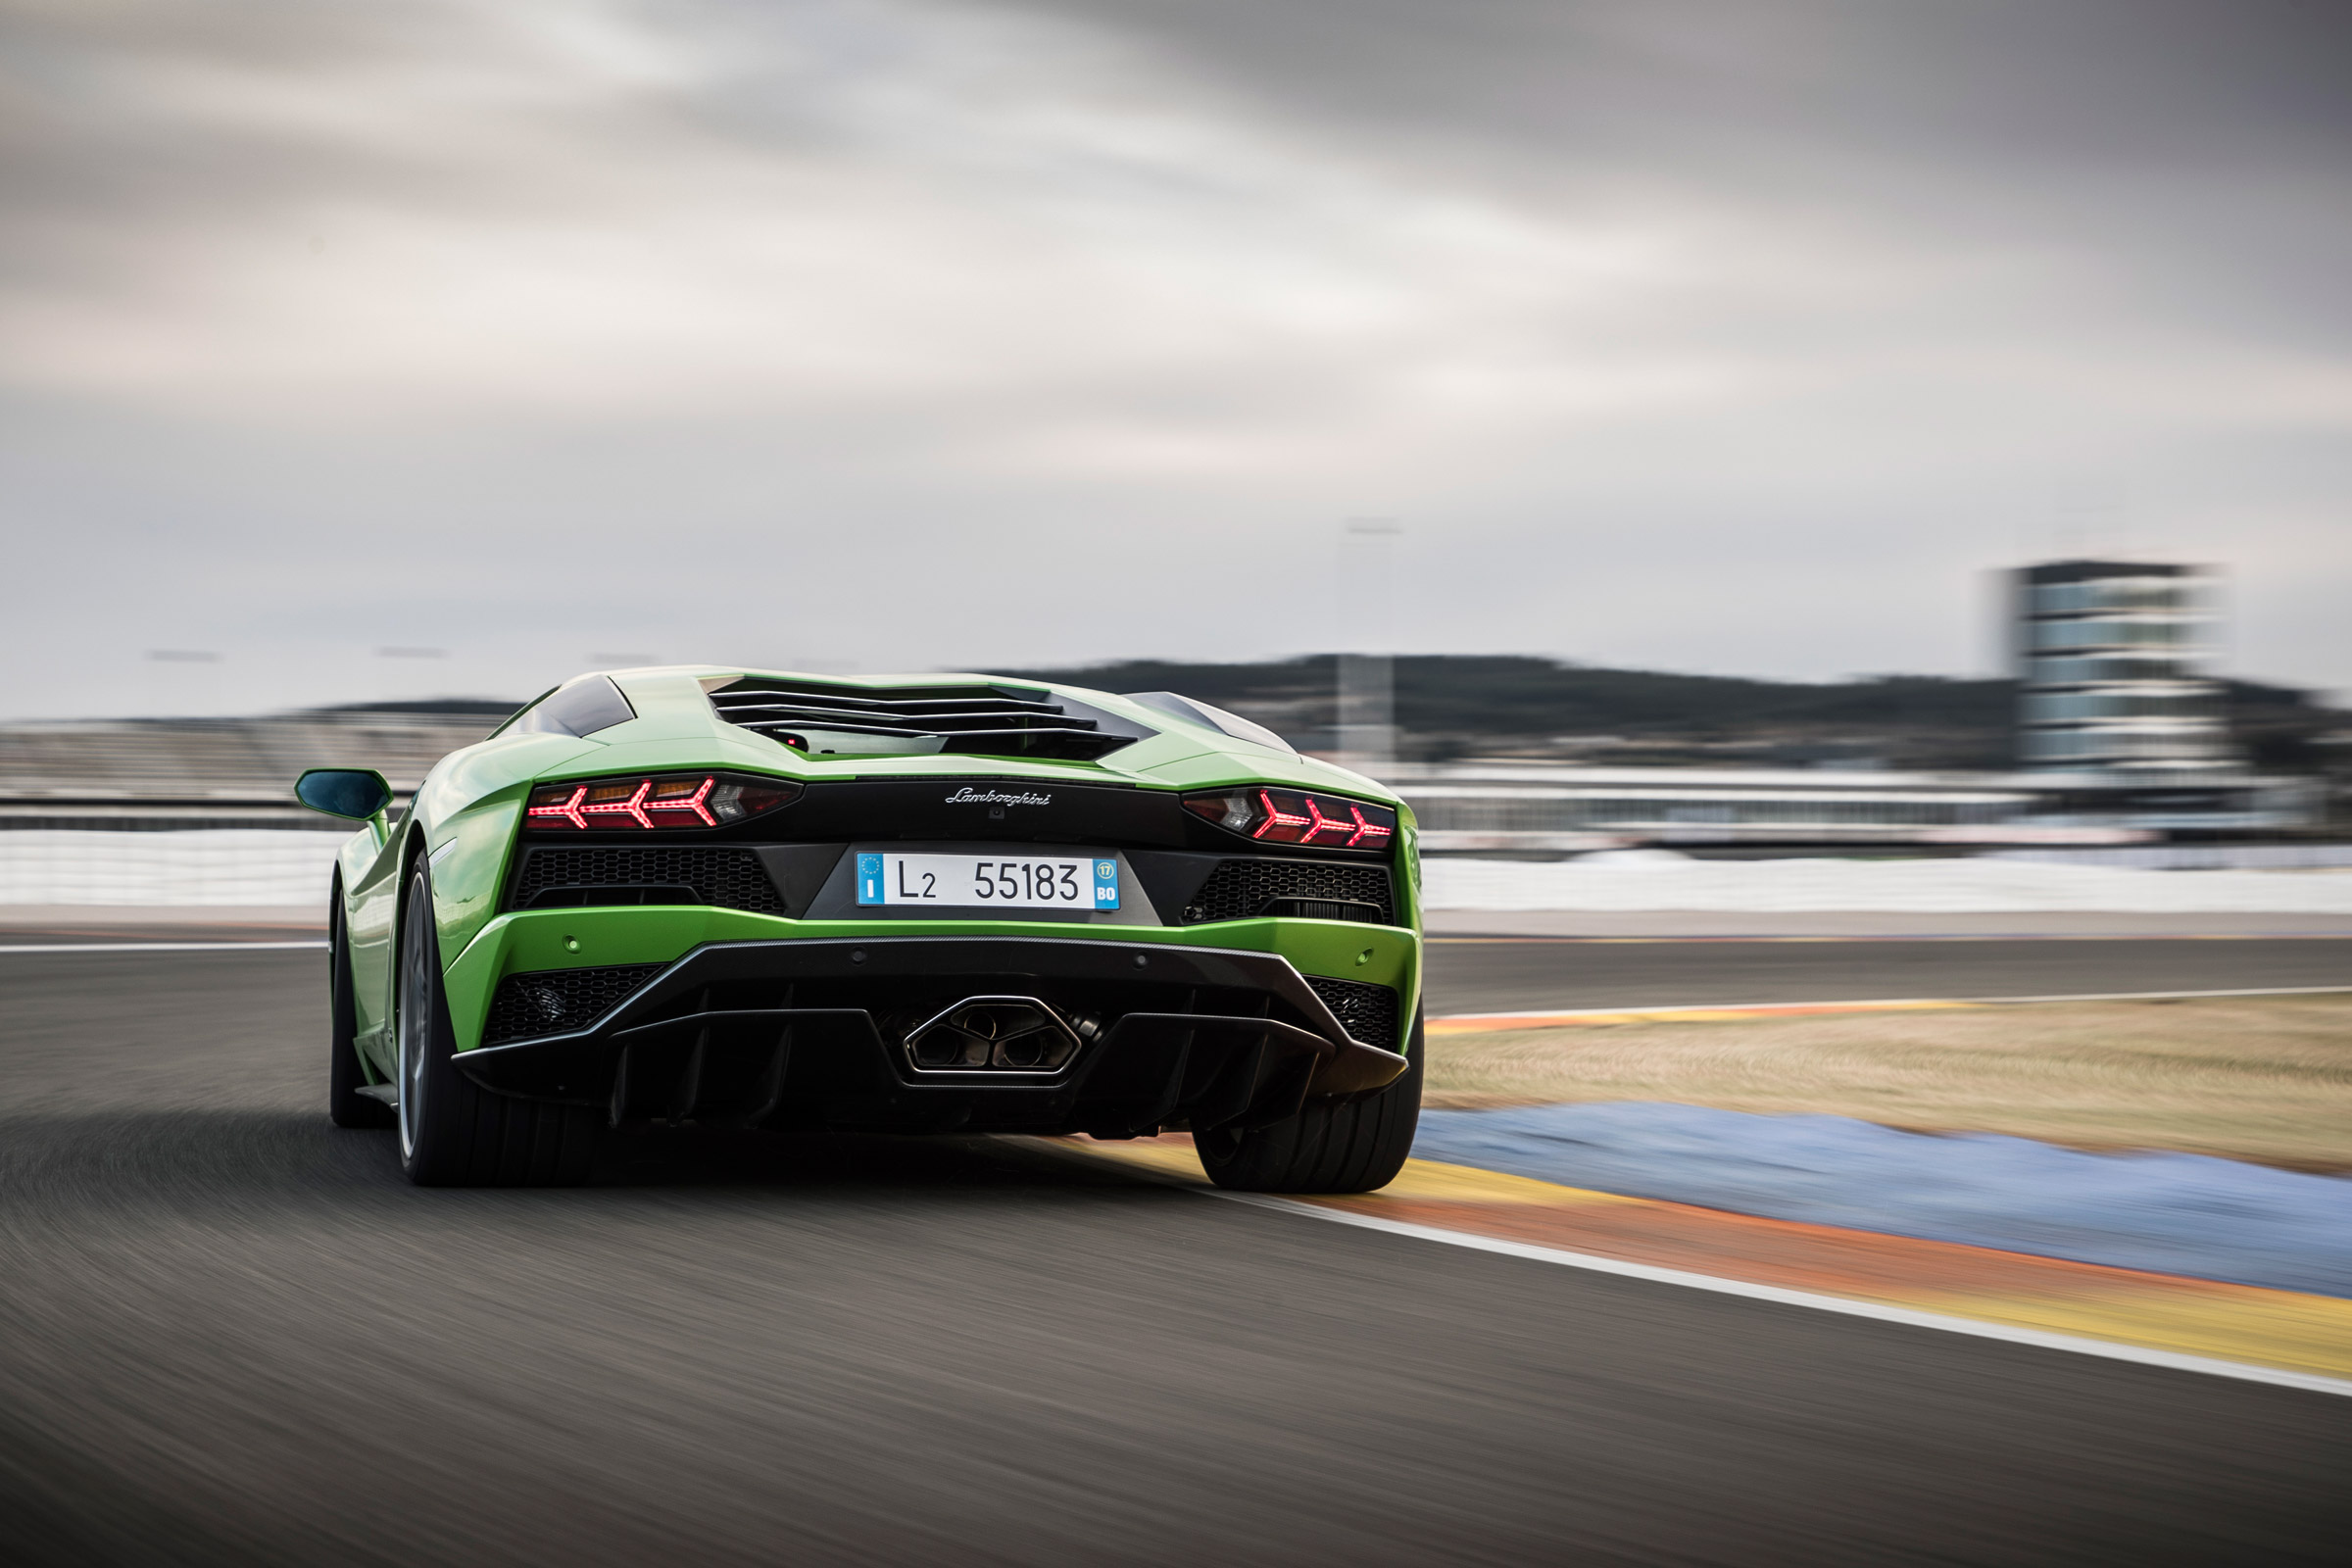 2017 Lamborghini Aventador S Green Rear View (Photo 12 of 20)